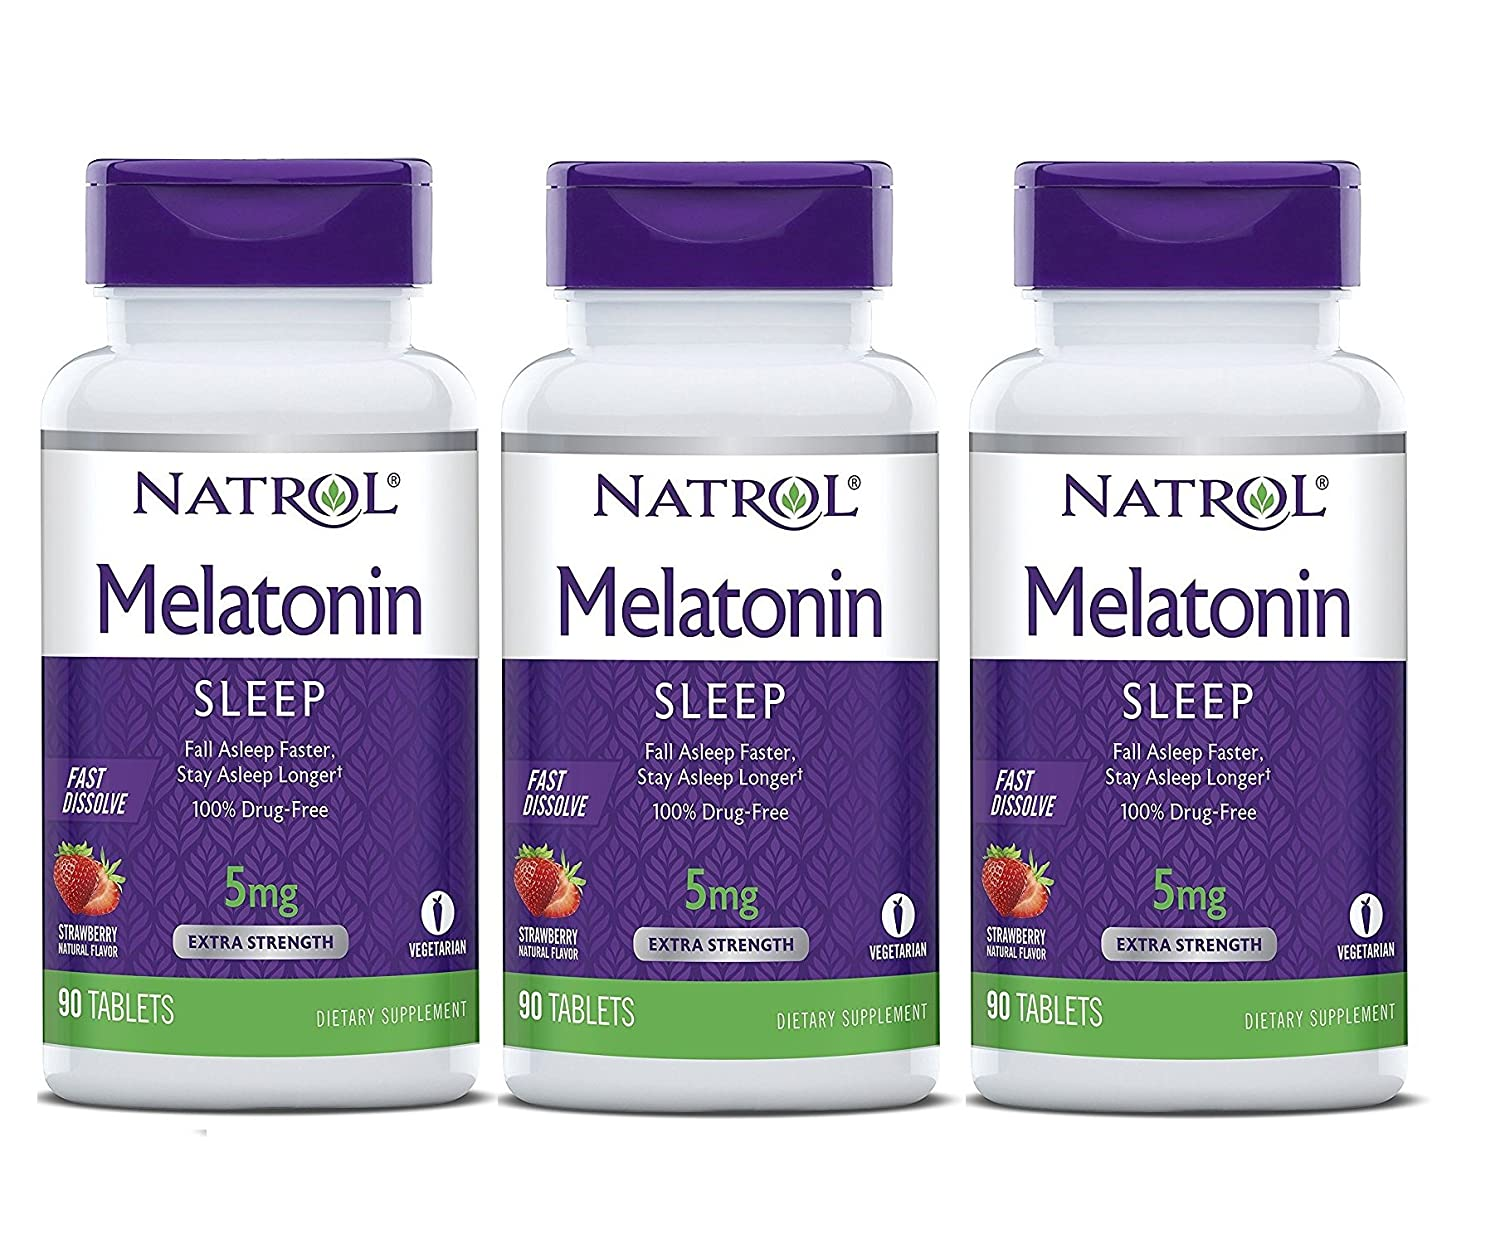 Amazon.com: Natrol Melatonin Fast Dissolve Tablets, Strawberry Flavor, 5mg, 90 Count (Pack of 3): Health & Personal Care